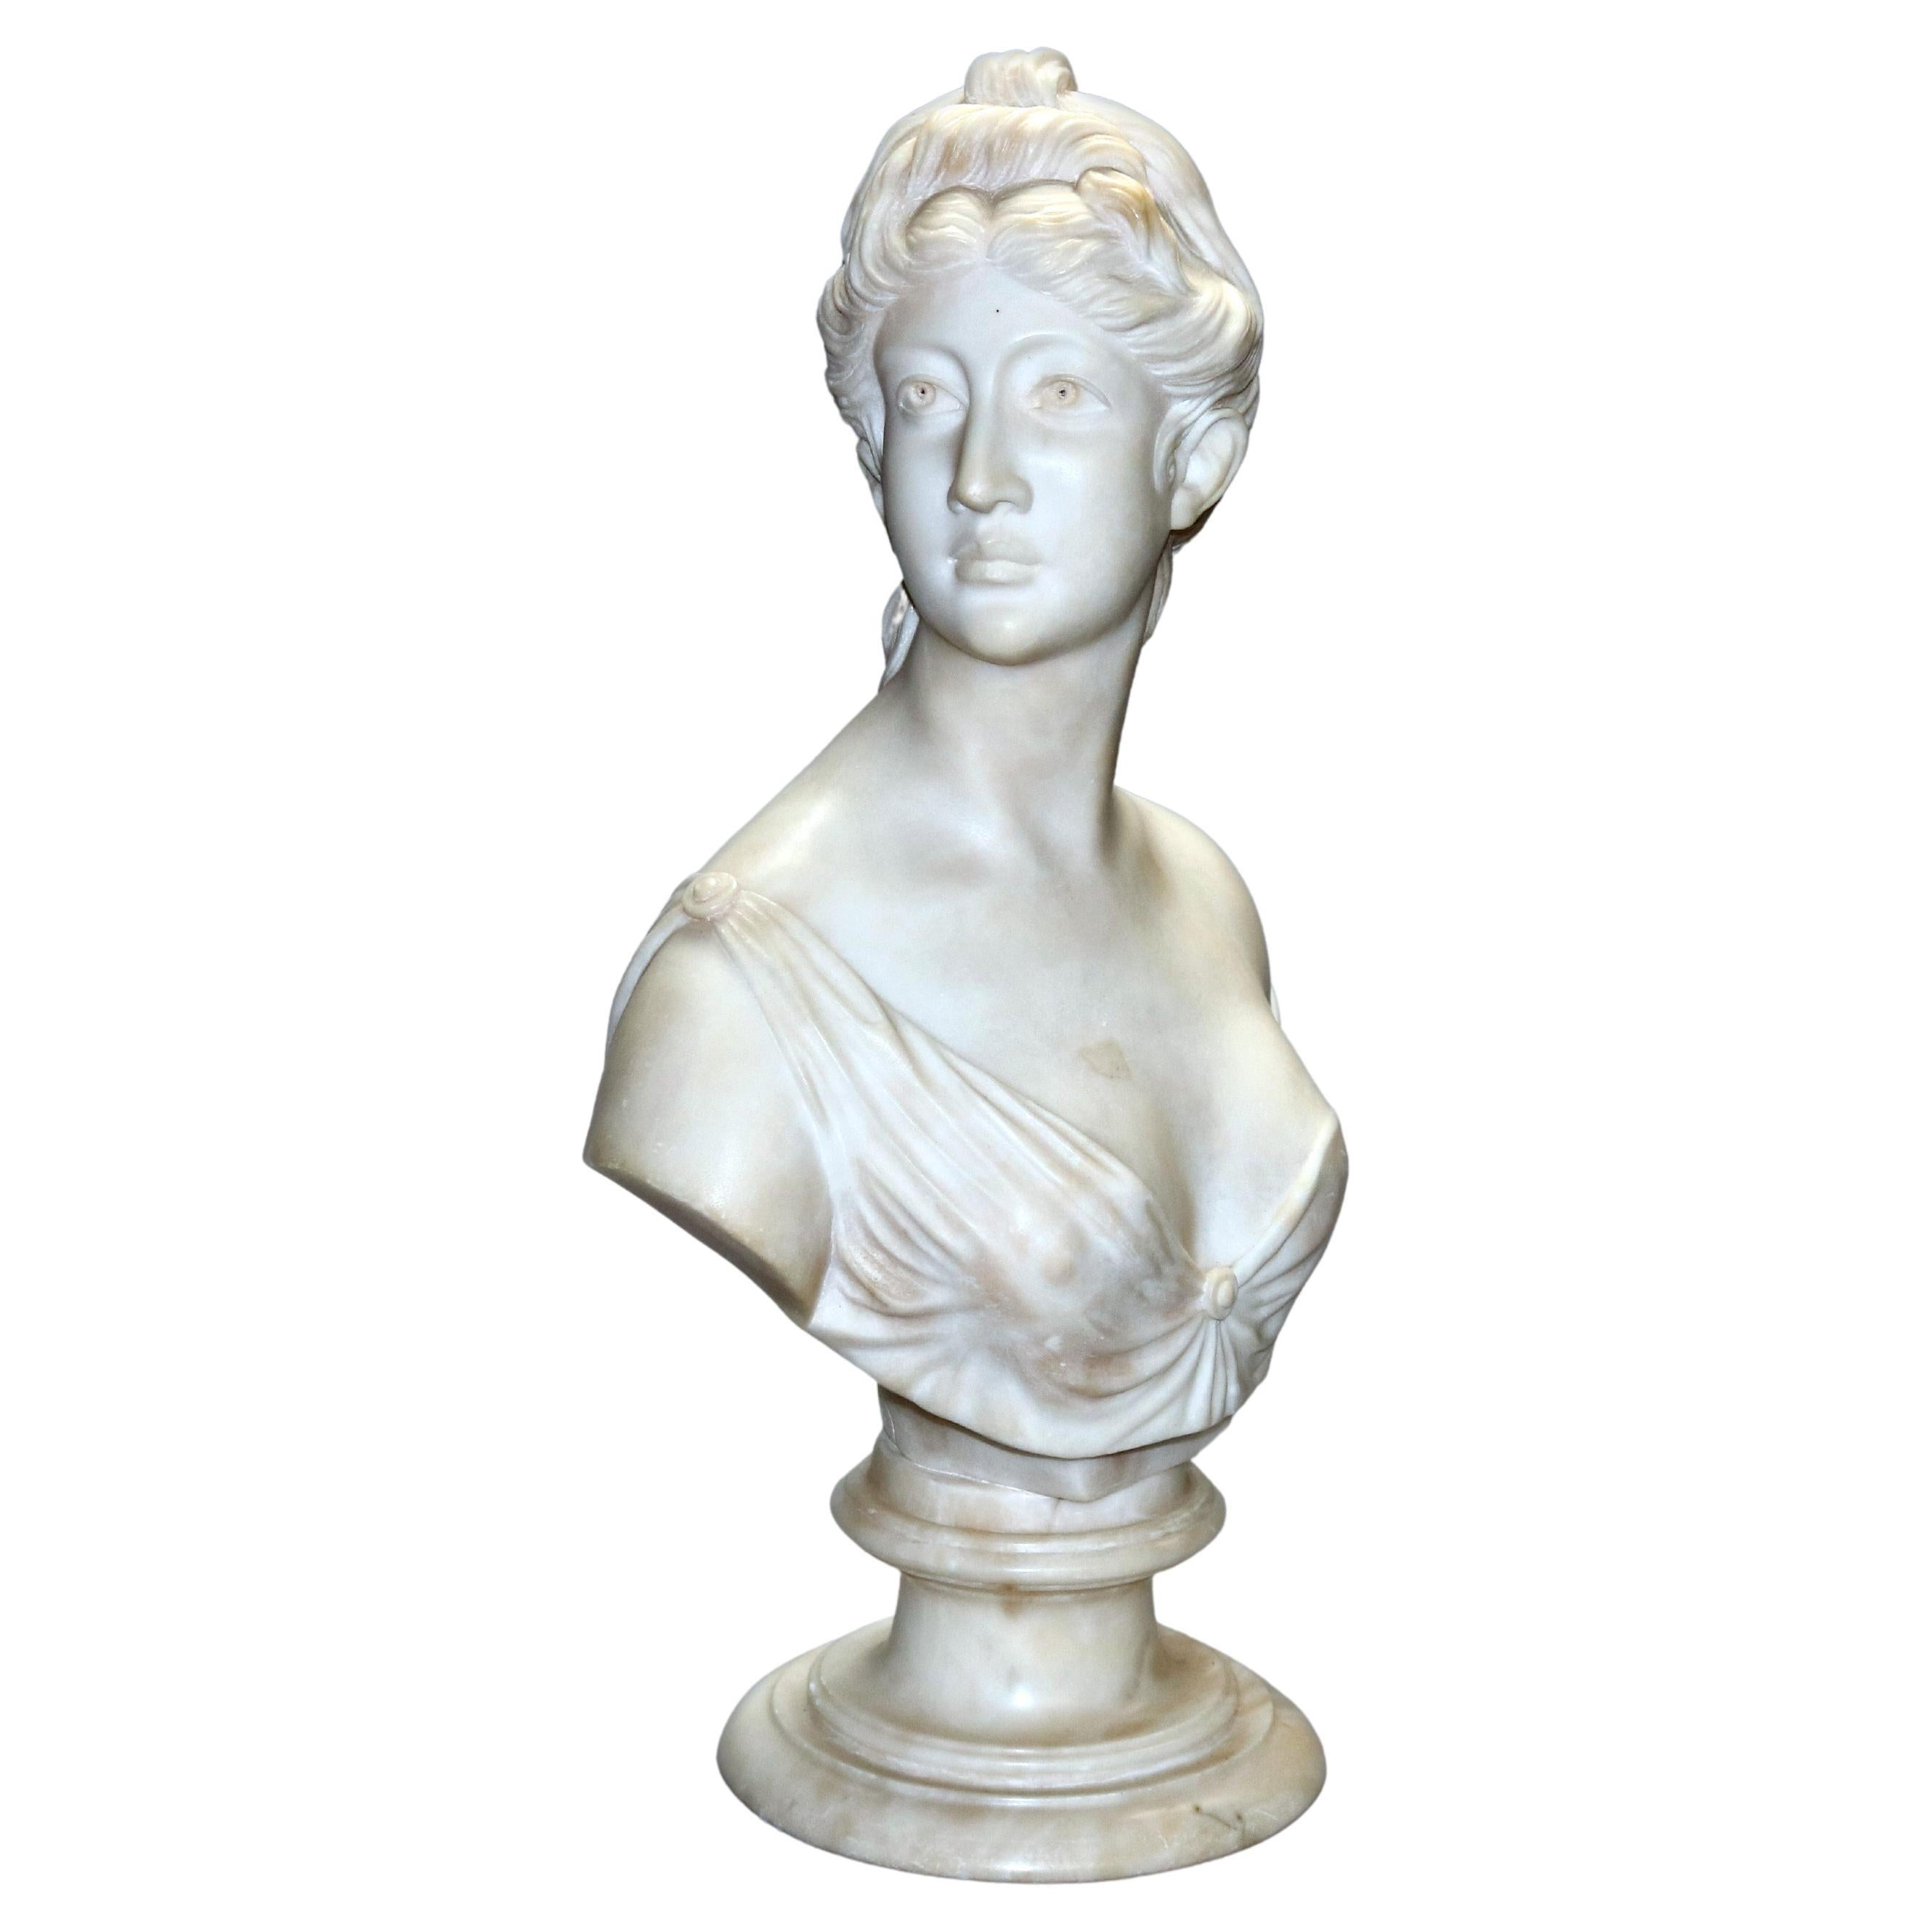 Antique Classical Italian Carved Marble Bust of a Woman by B. Bensi, circa 1890